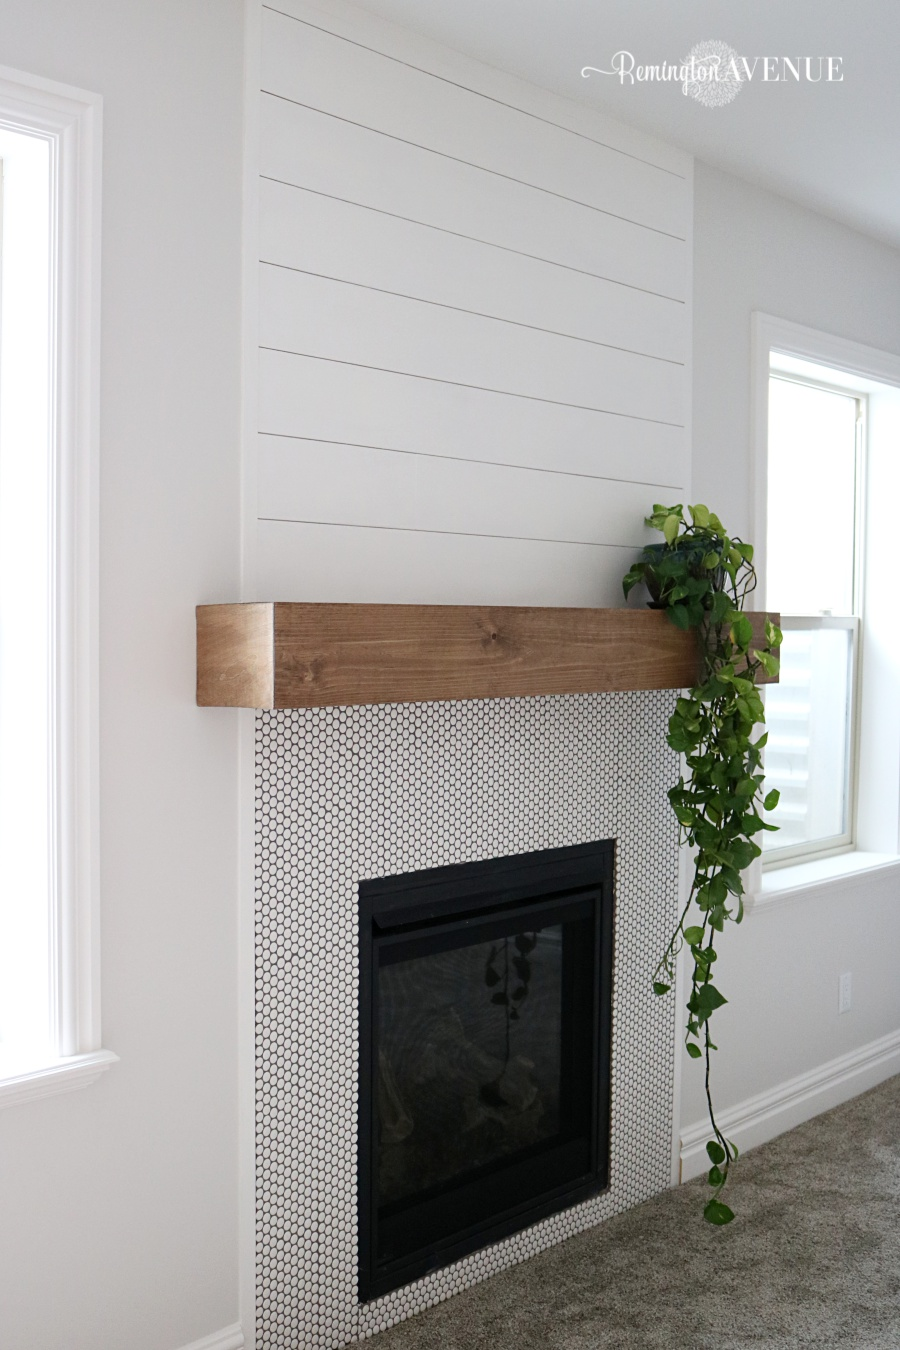 easy diy wood mantel remington avenue wooden floating shelf course real chunk would hundreds dollars naturally chose make own was actually way easier then imagined oak corner